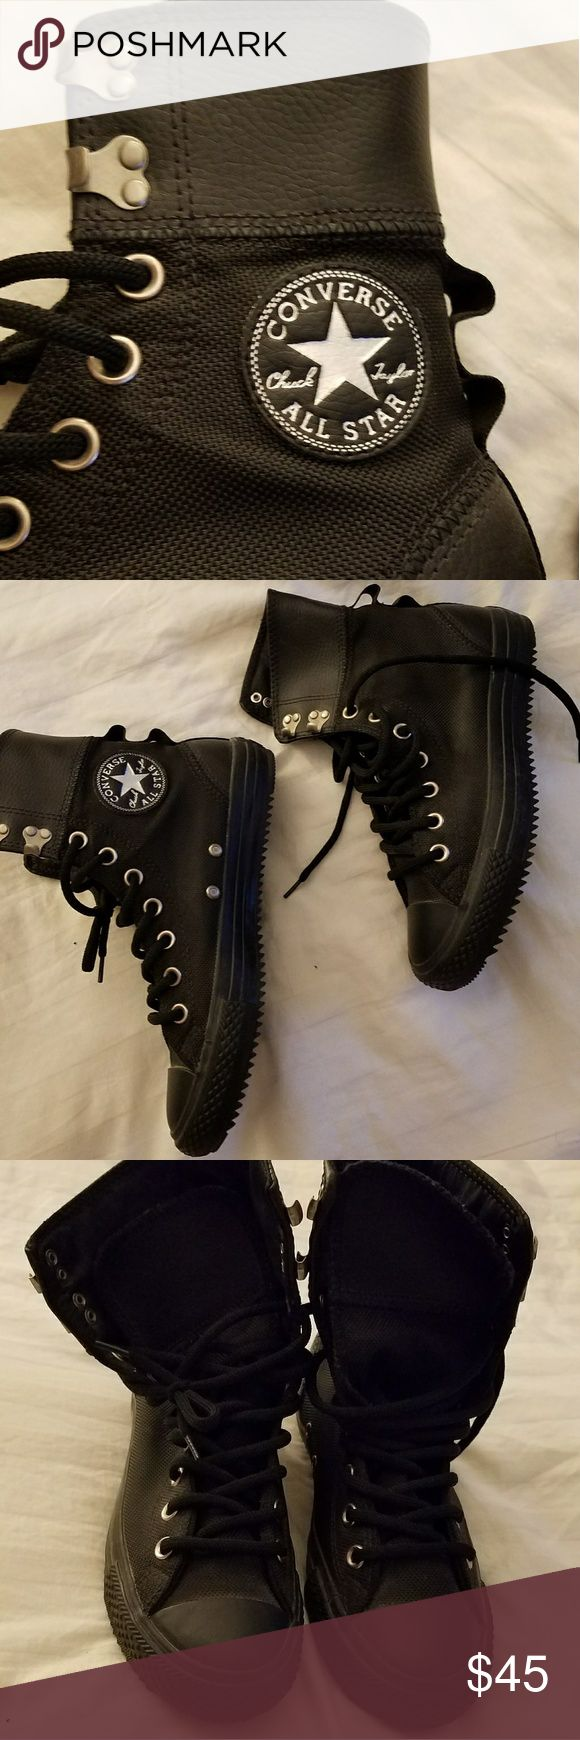 All black converse These are NWOT and box. Never been worn so perfect condition. The cuff is leather and the body of the shoe is canvas. They are an amazing shoe that will bring out the best in any edgy outfit! Converse Shoes Sneakers